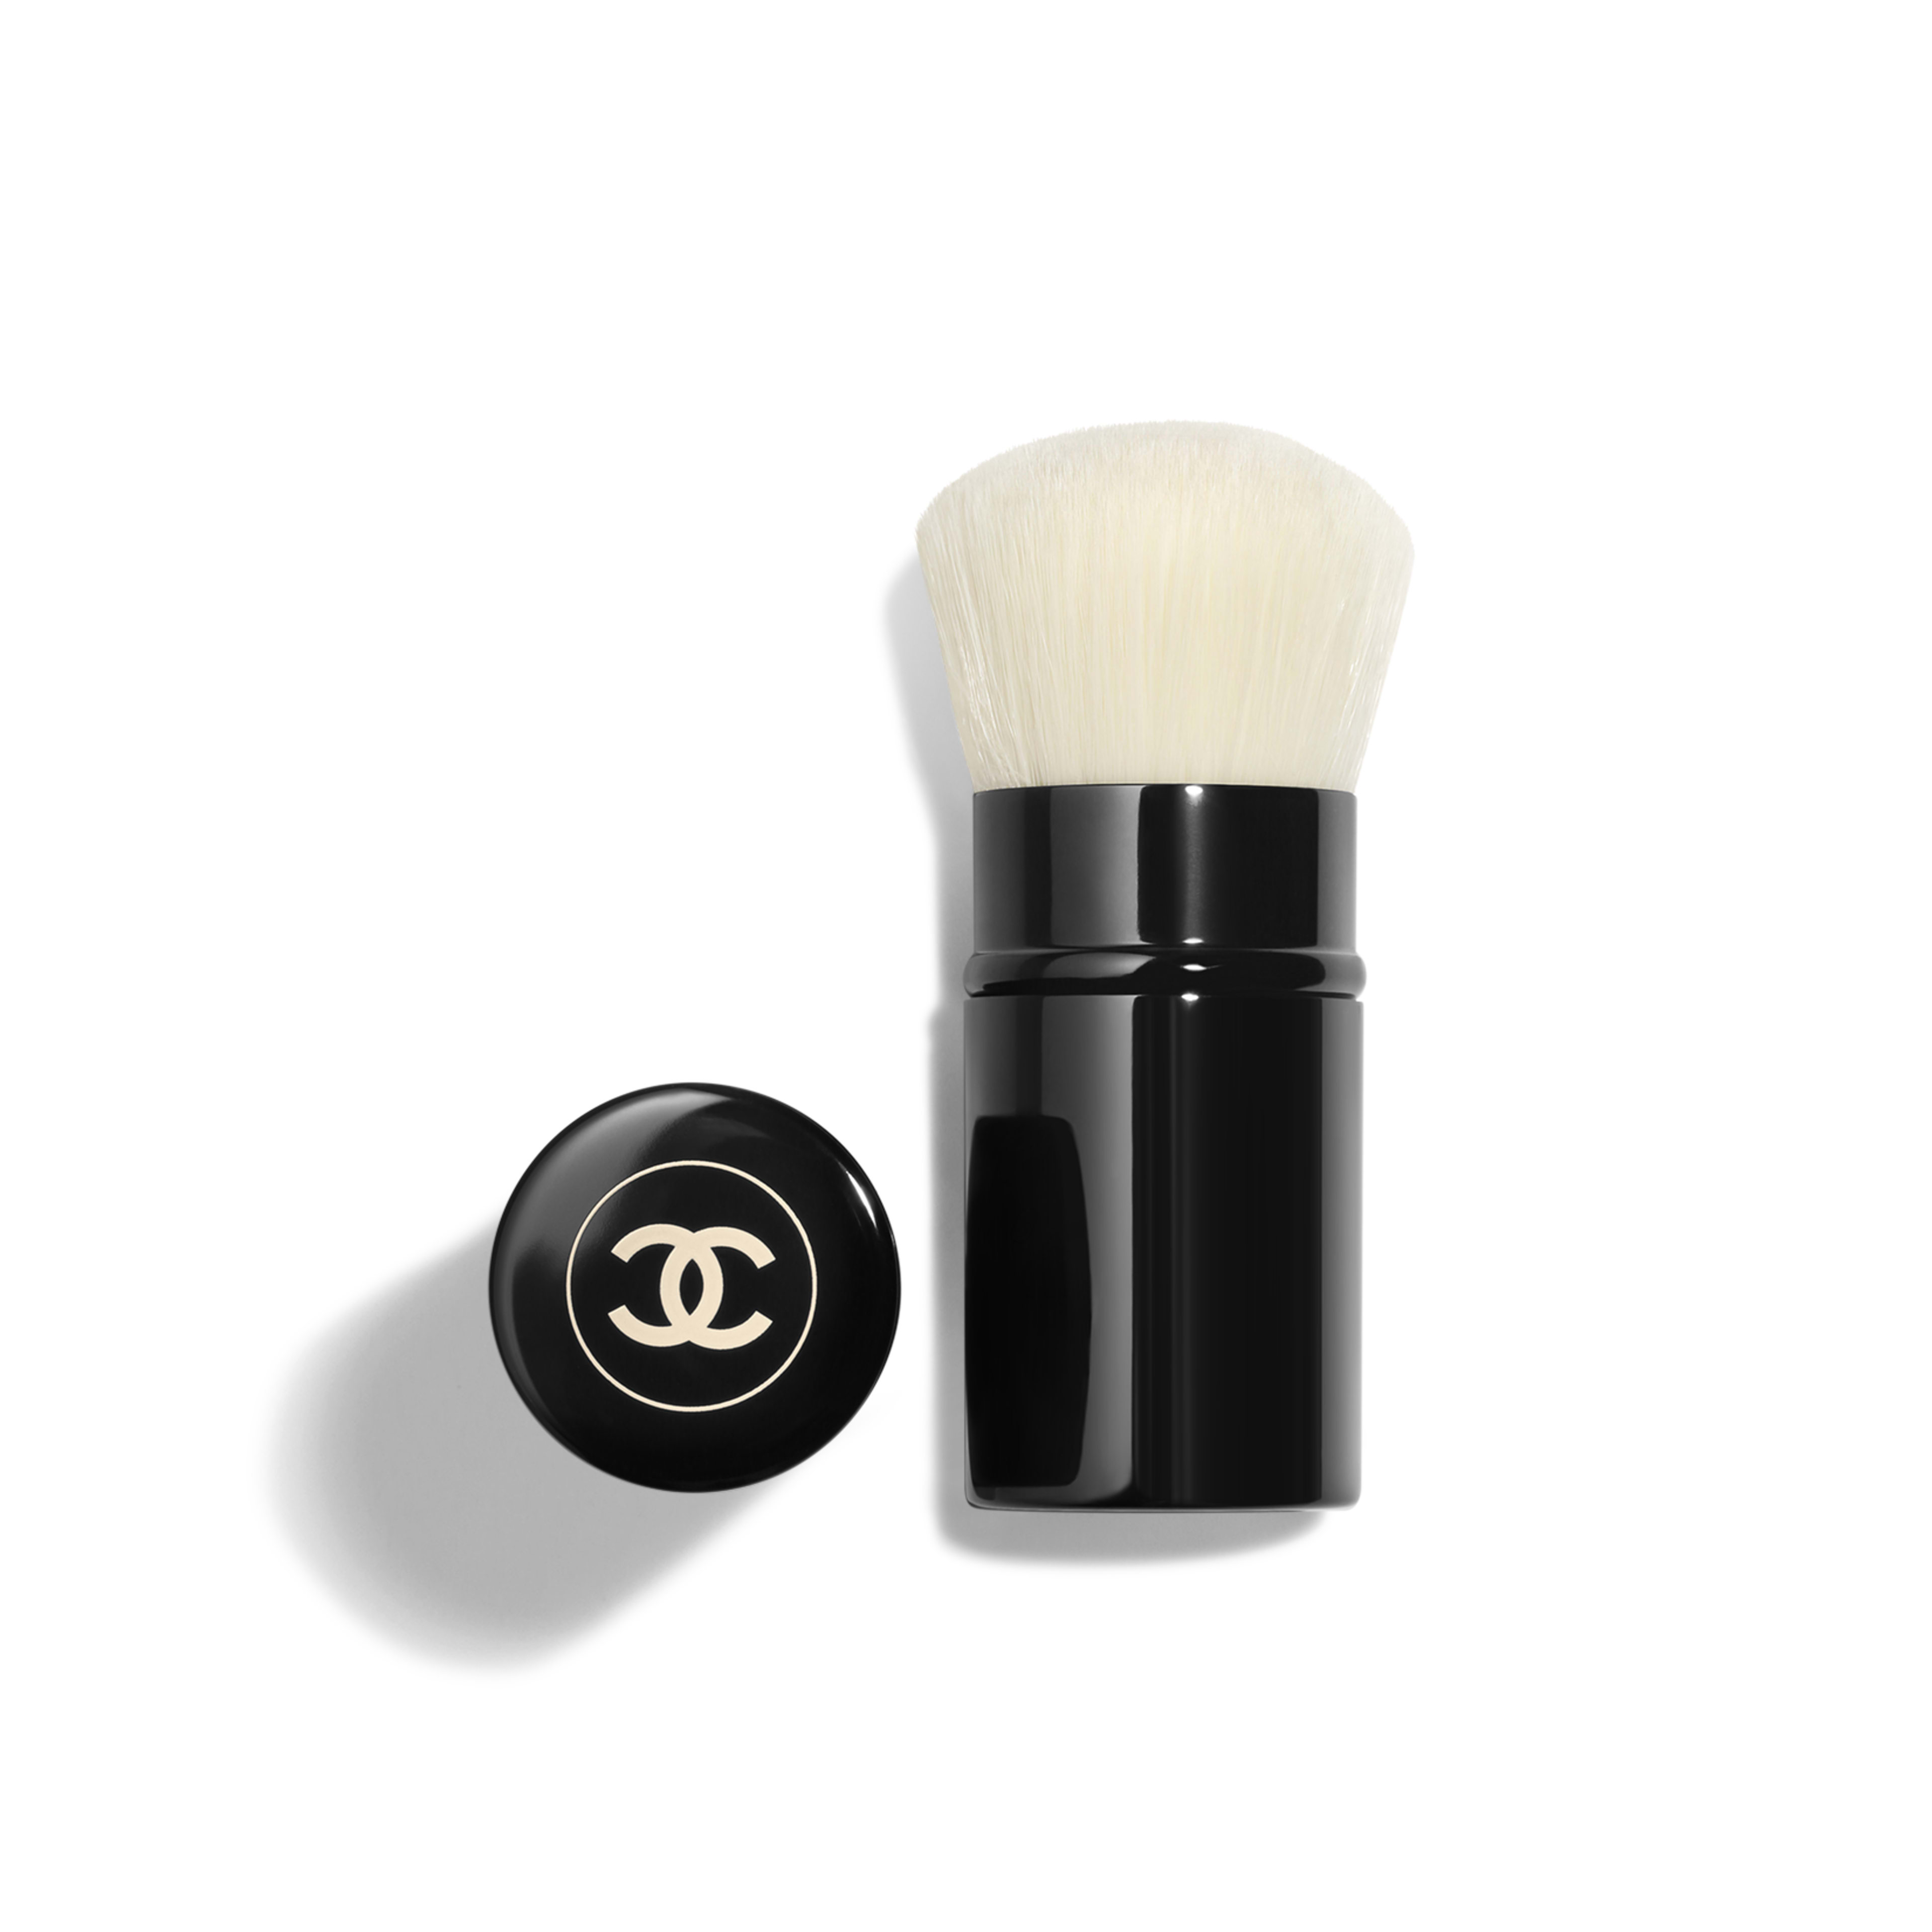 LES PINCEAUX DE CHANEL - makeup - 1Piece - Default view